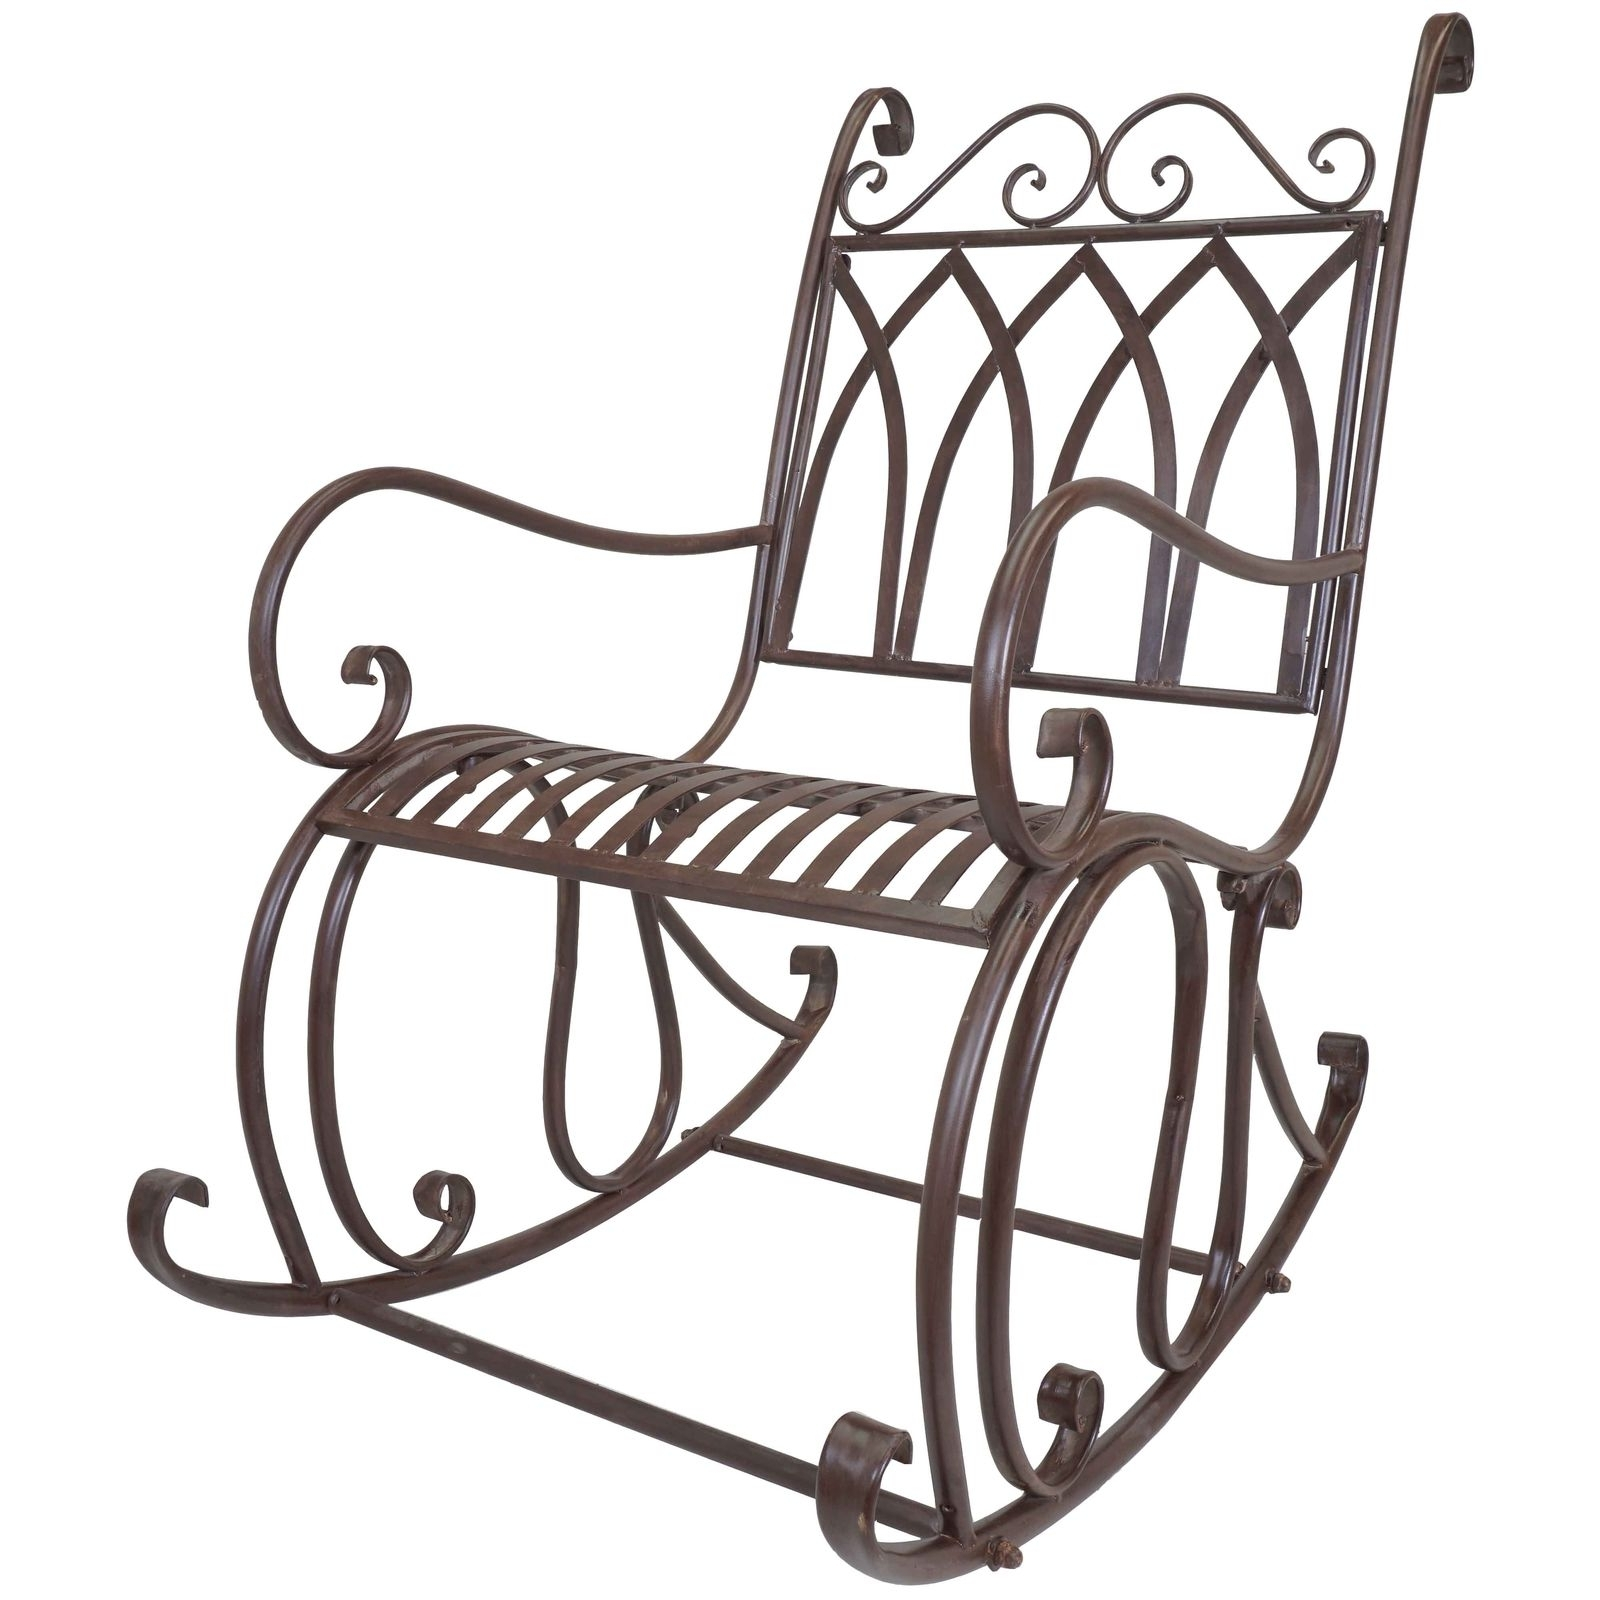 Titan Outdoor Metal Rocking Chair White Porch Patio Garden Seat Deck Intended For Current Patio Metal Rocking Chairs (View 11 of 20)